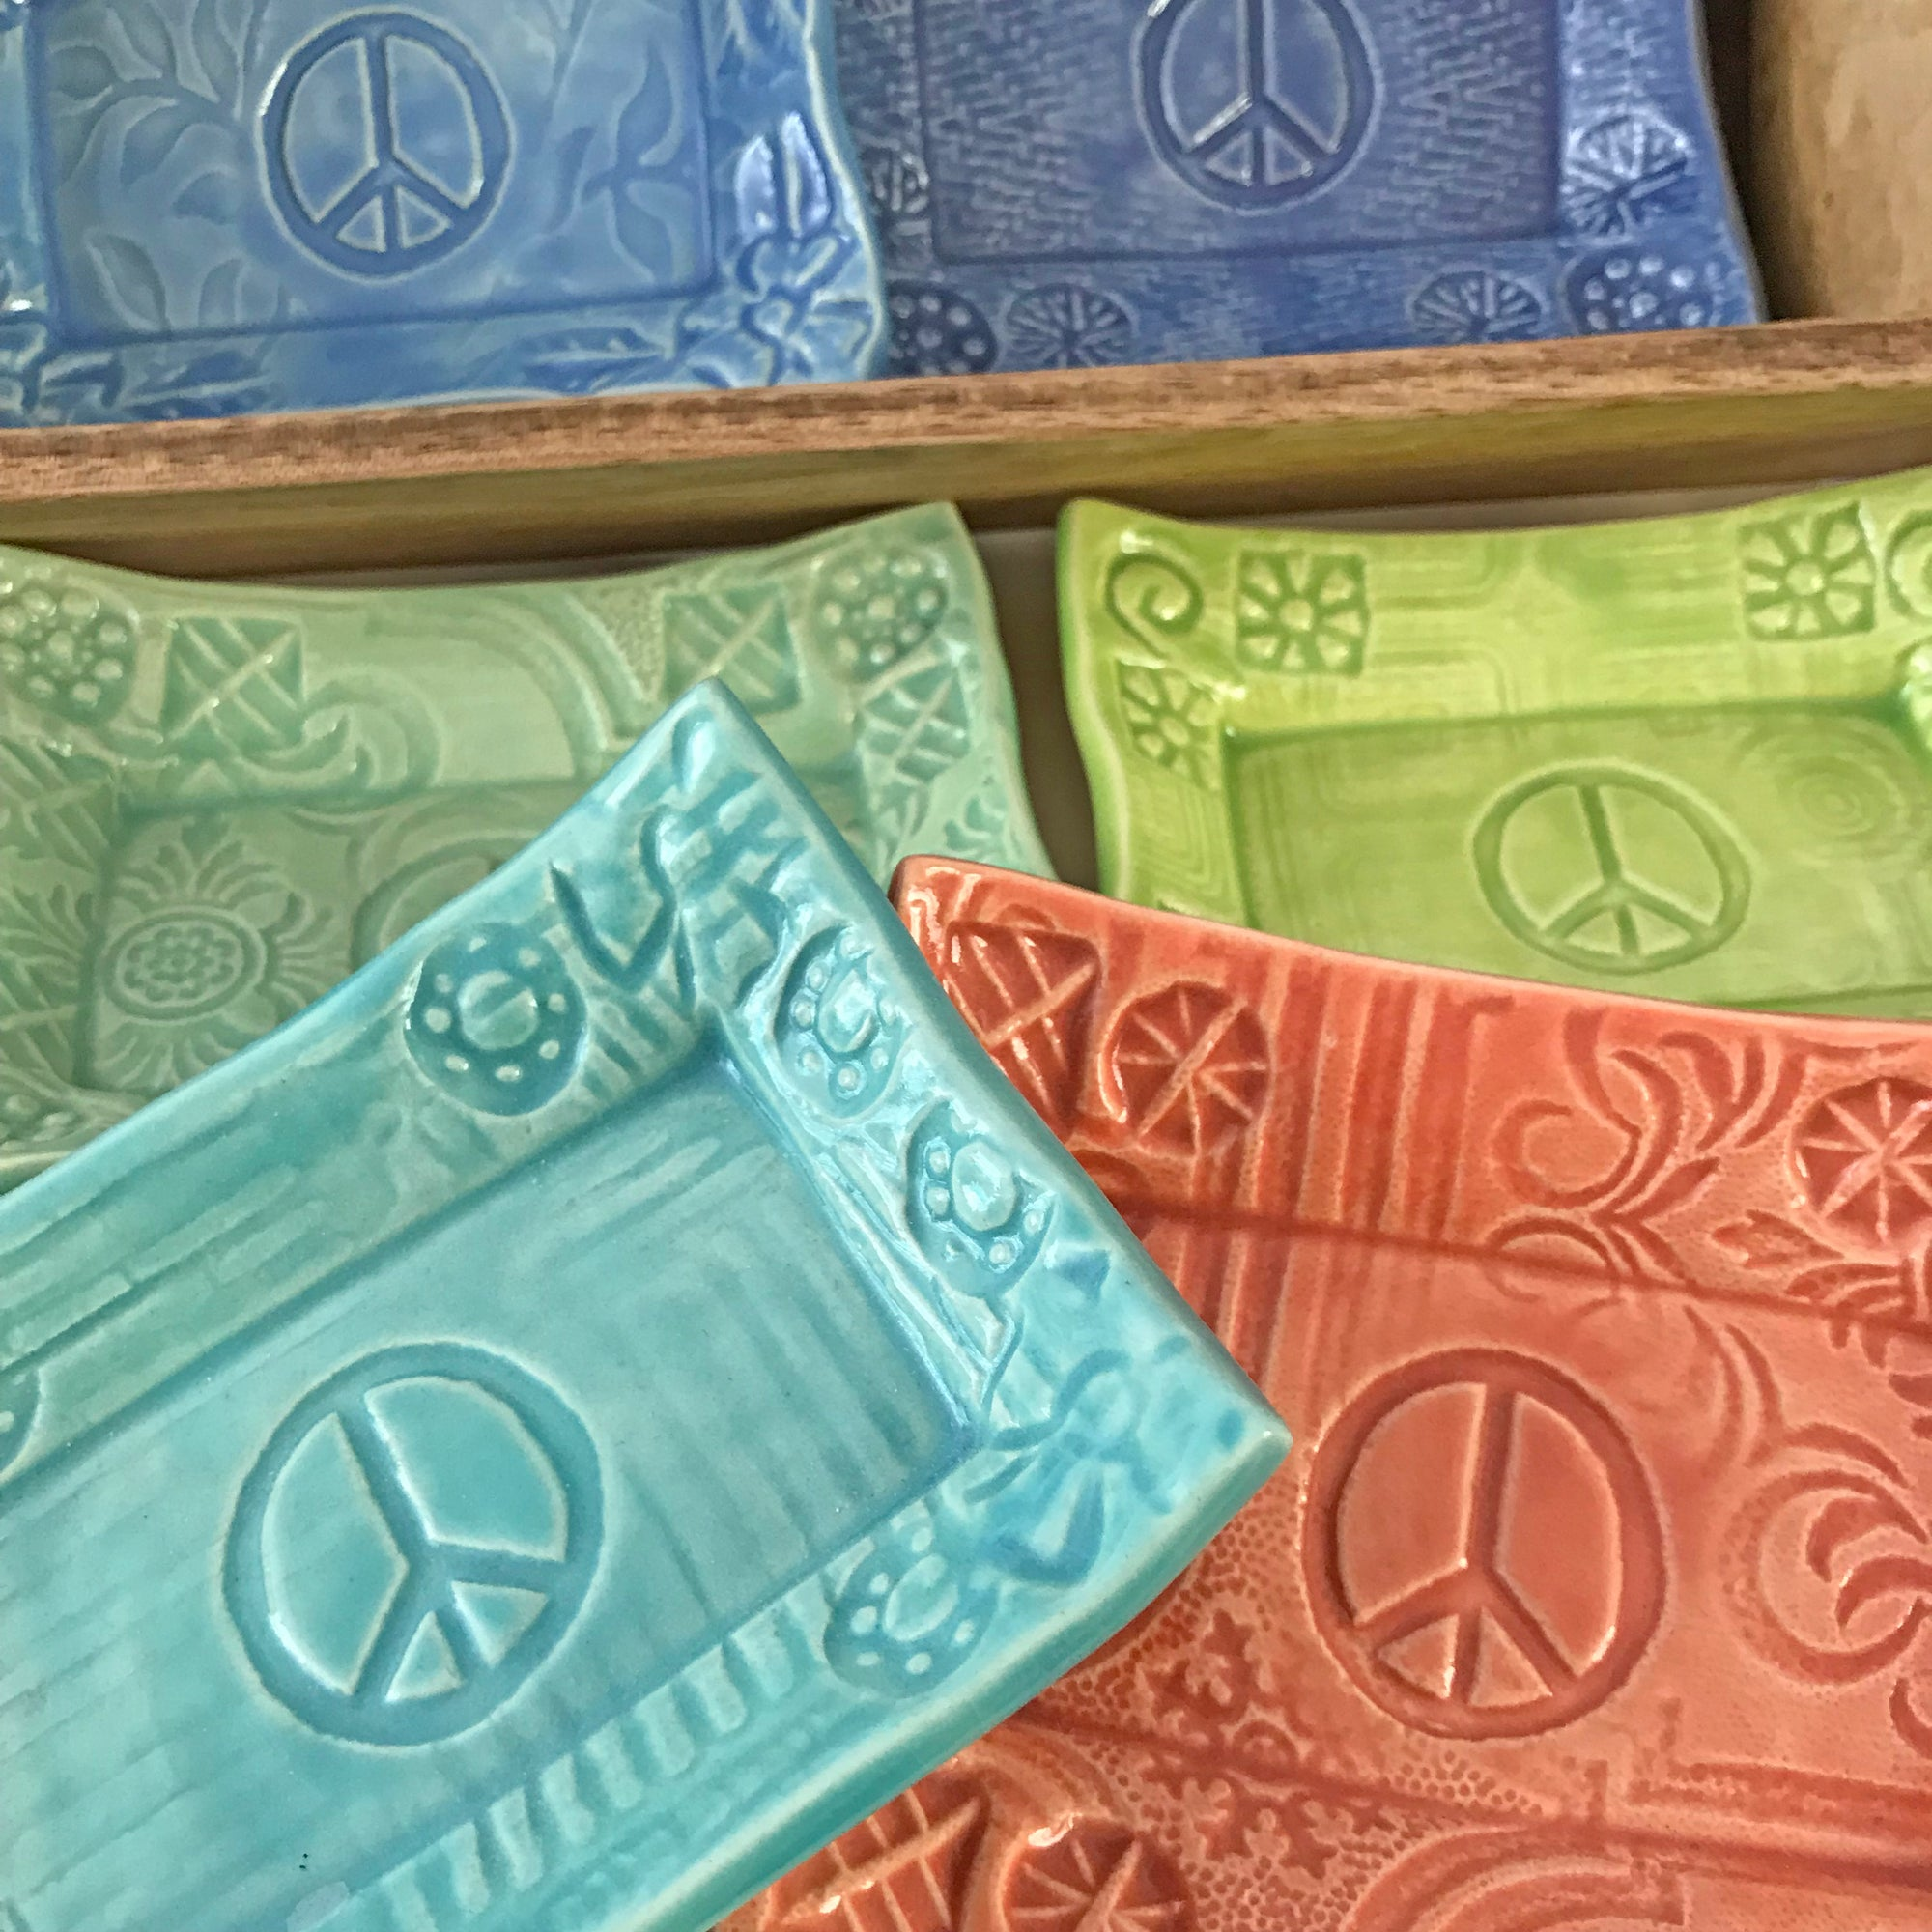 Soap Dish with peace sign.  Handmade and each is different.  A great gift idea.